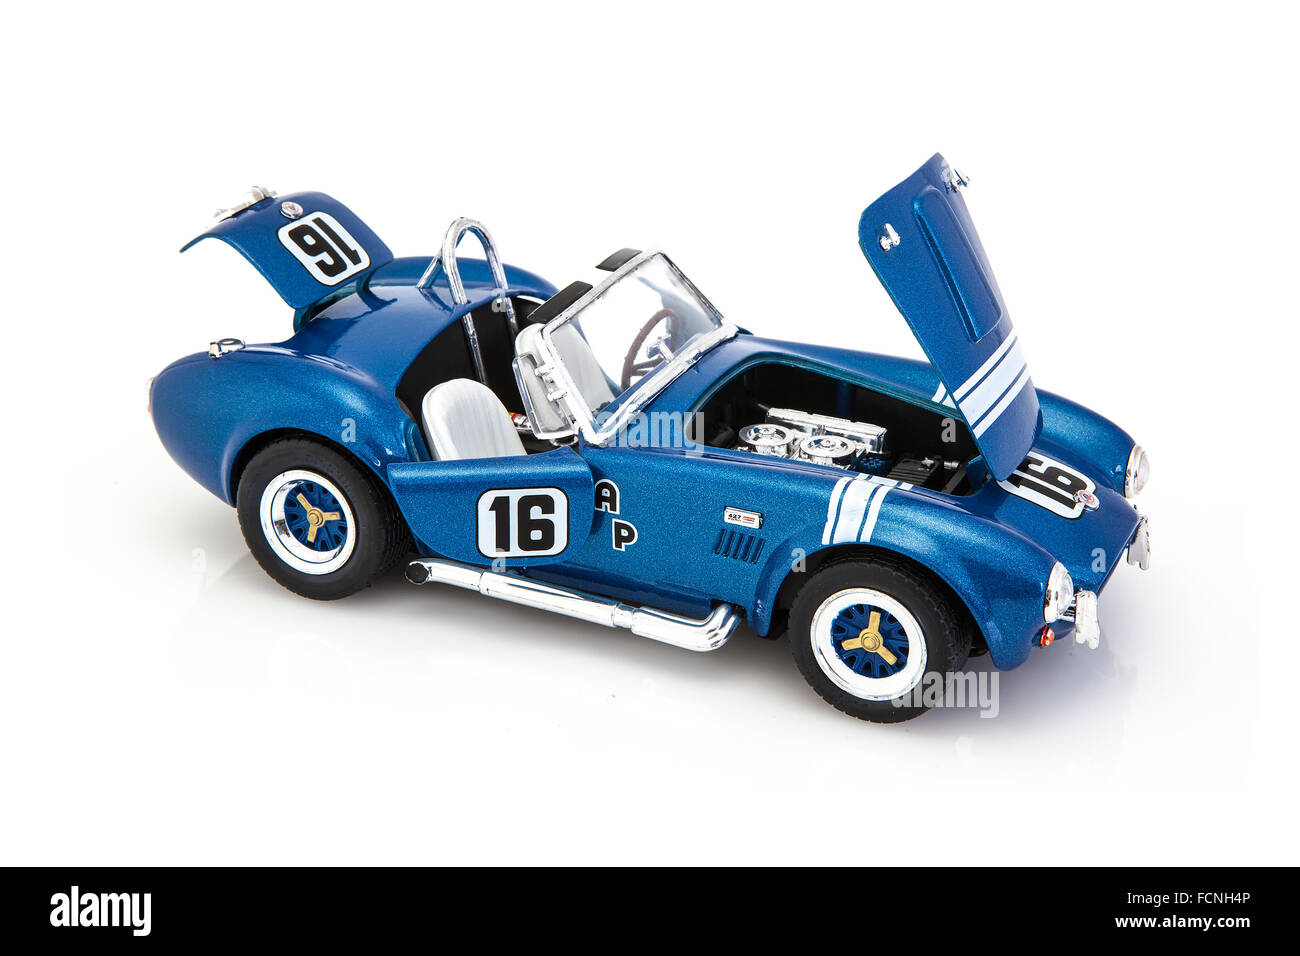 AC Cobra Coupe in racing trim on a white background fitted with a Ford 427 seven liter engine - Stock Image